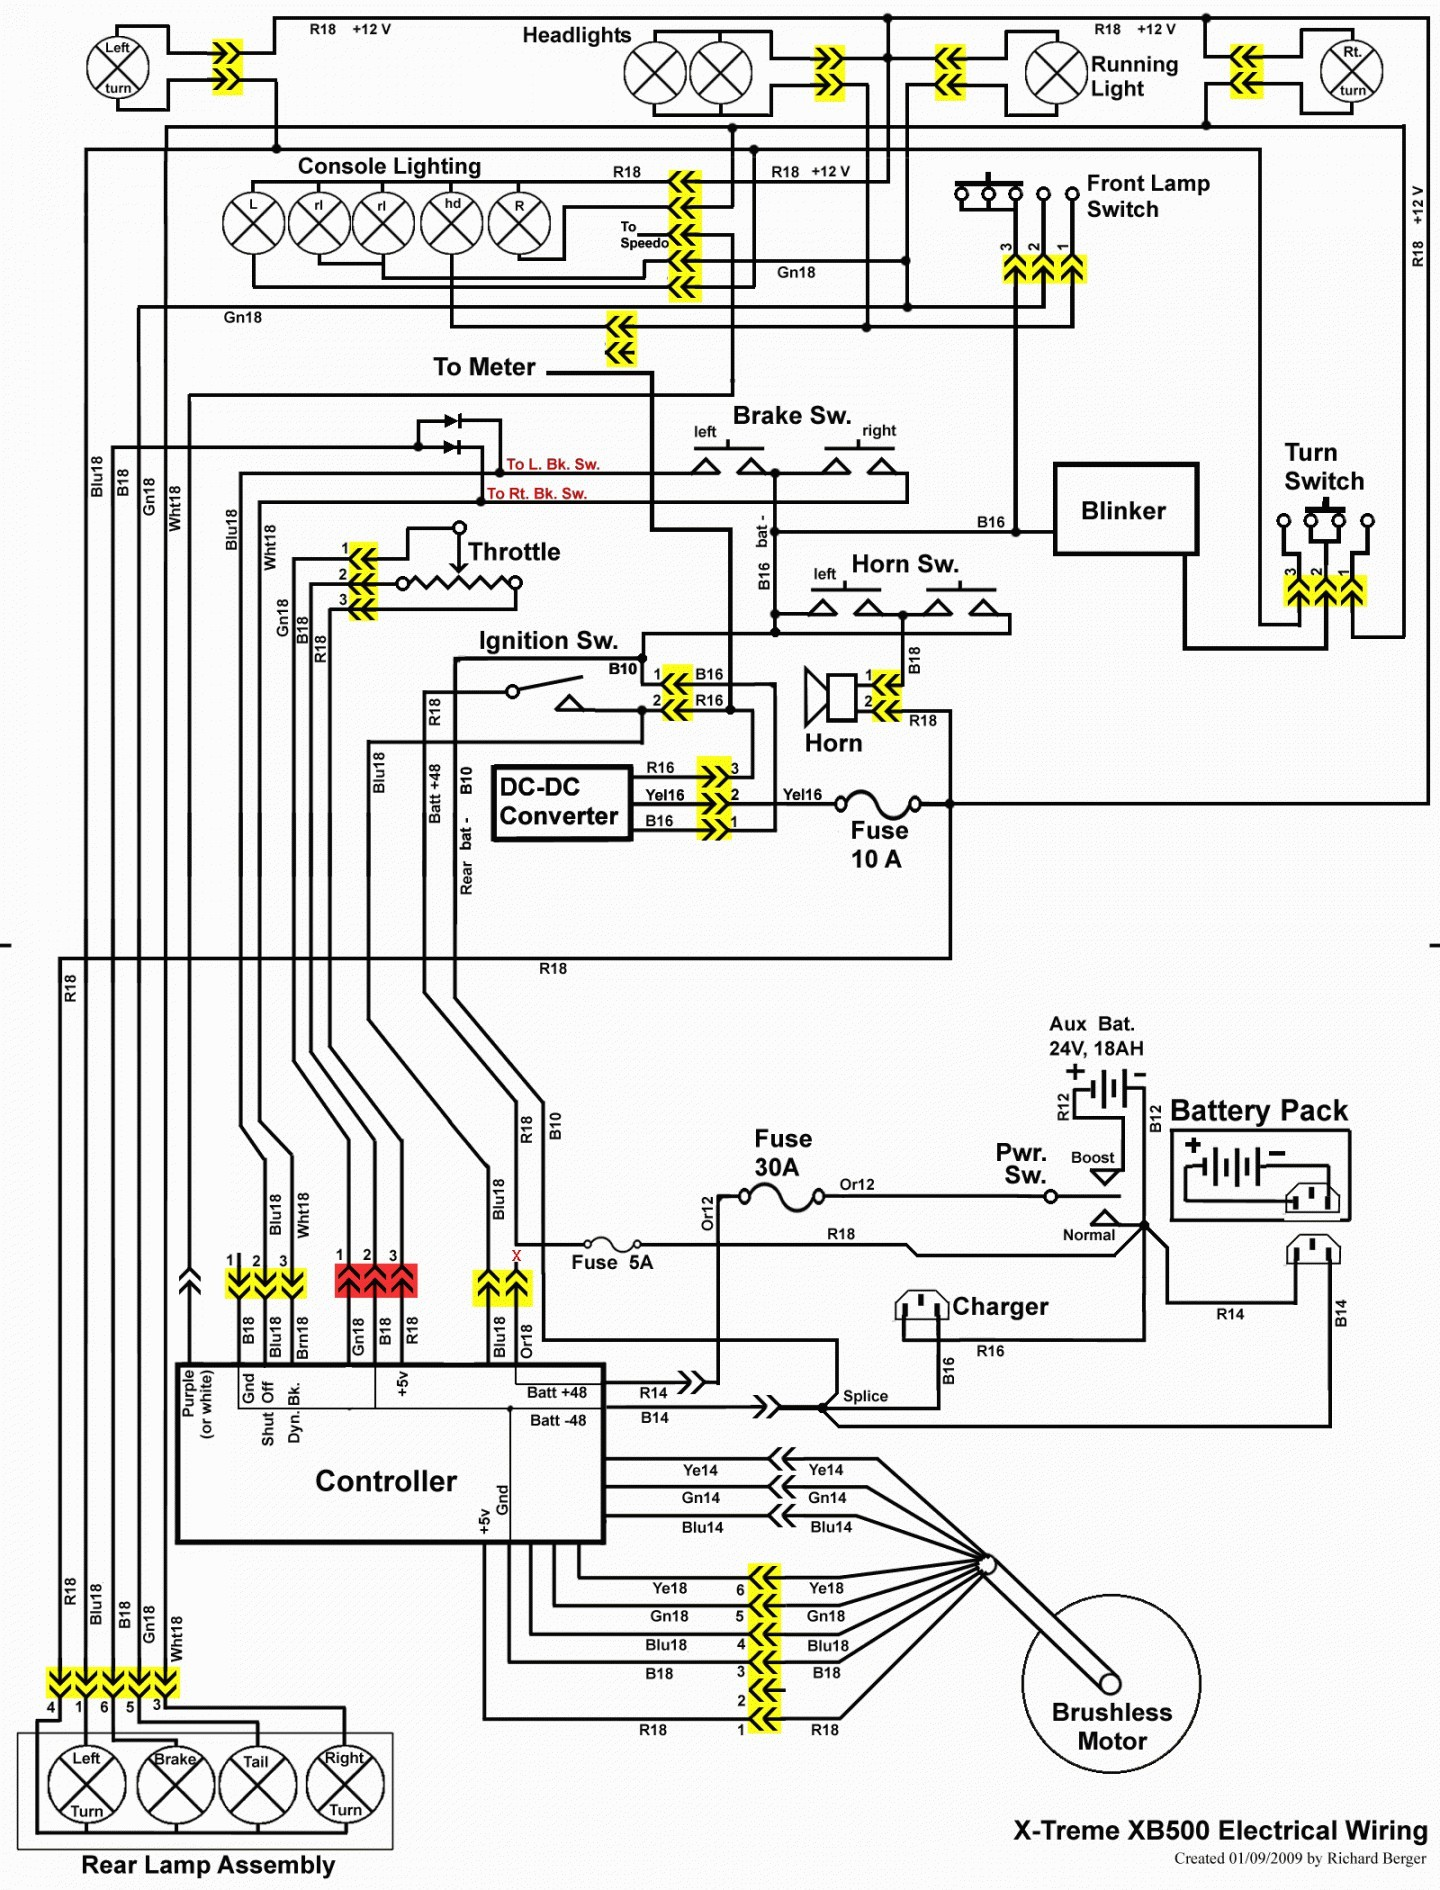 Wire Diagram For Tao Tao Scooter - Circuit Diagram & Wiring ... on